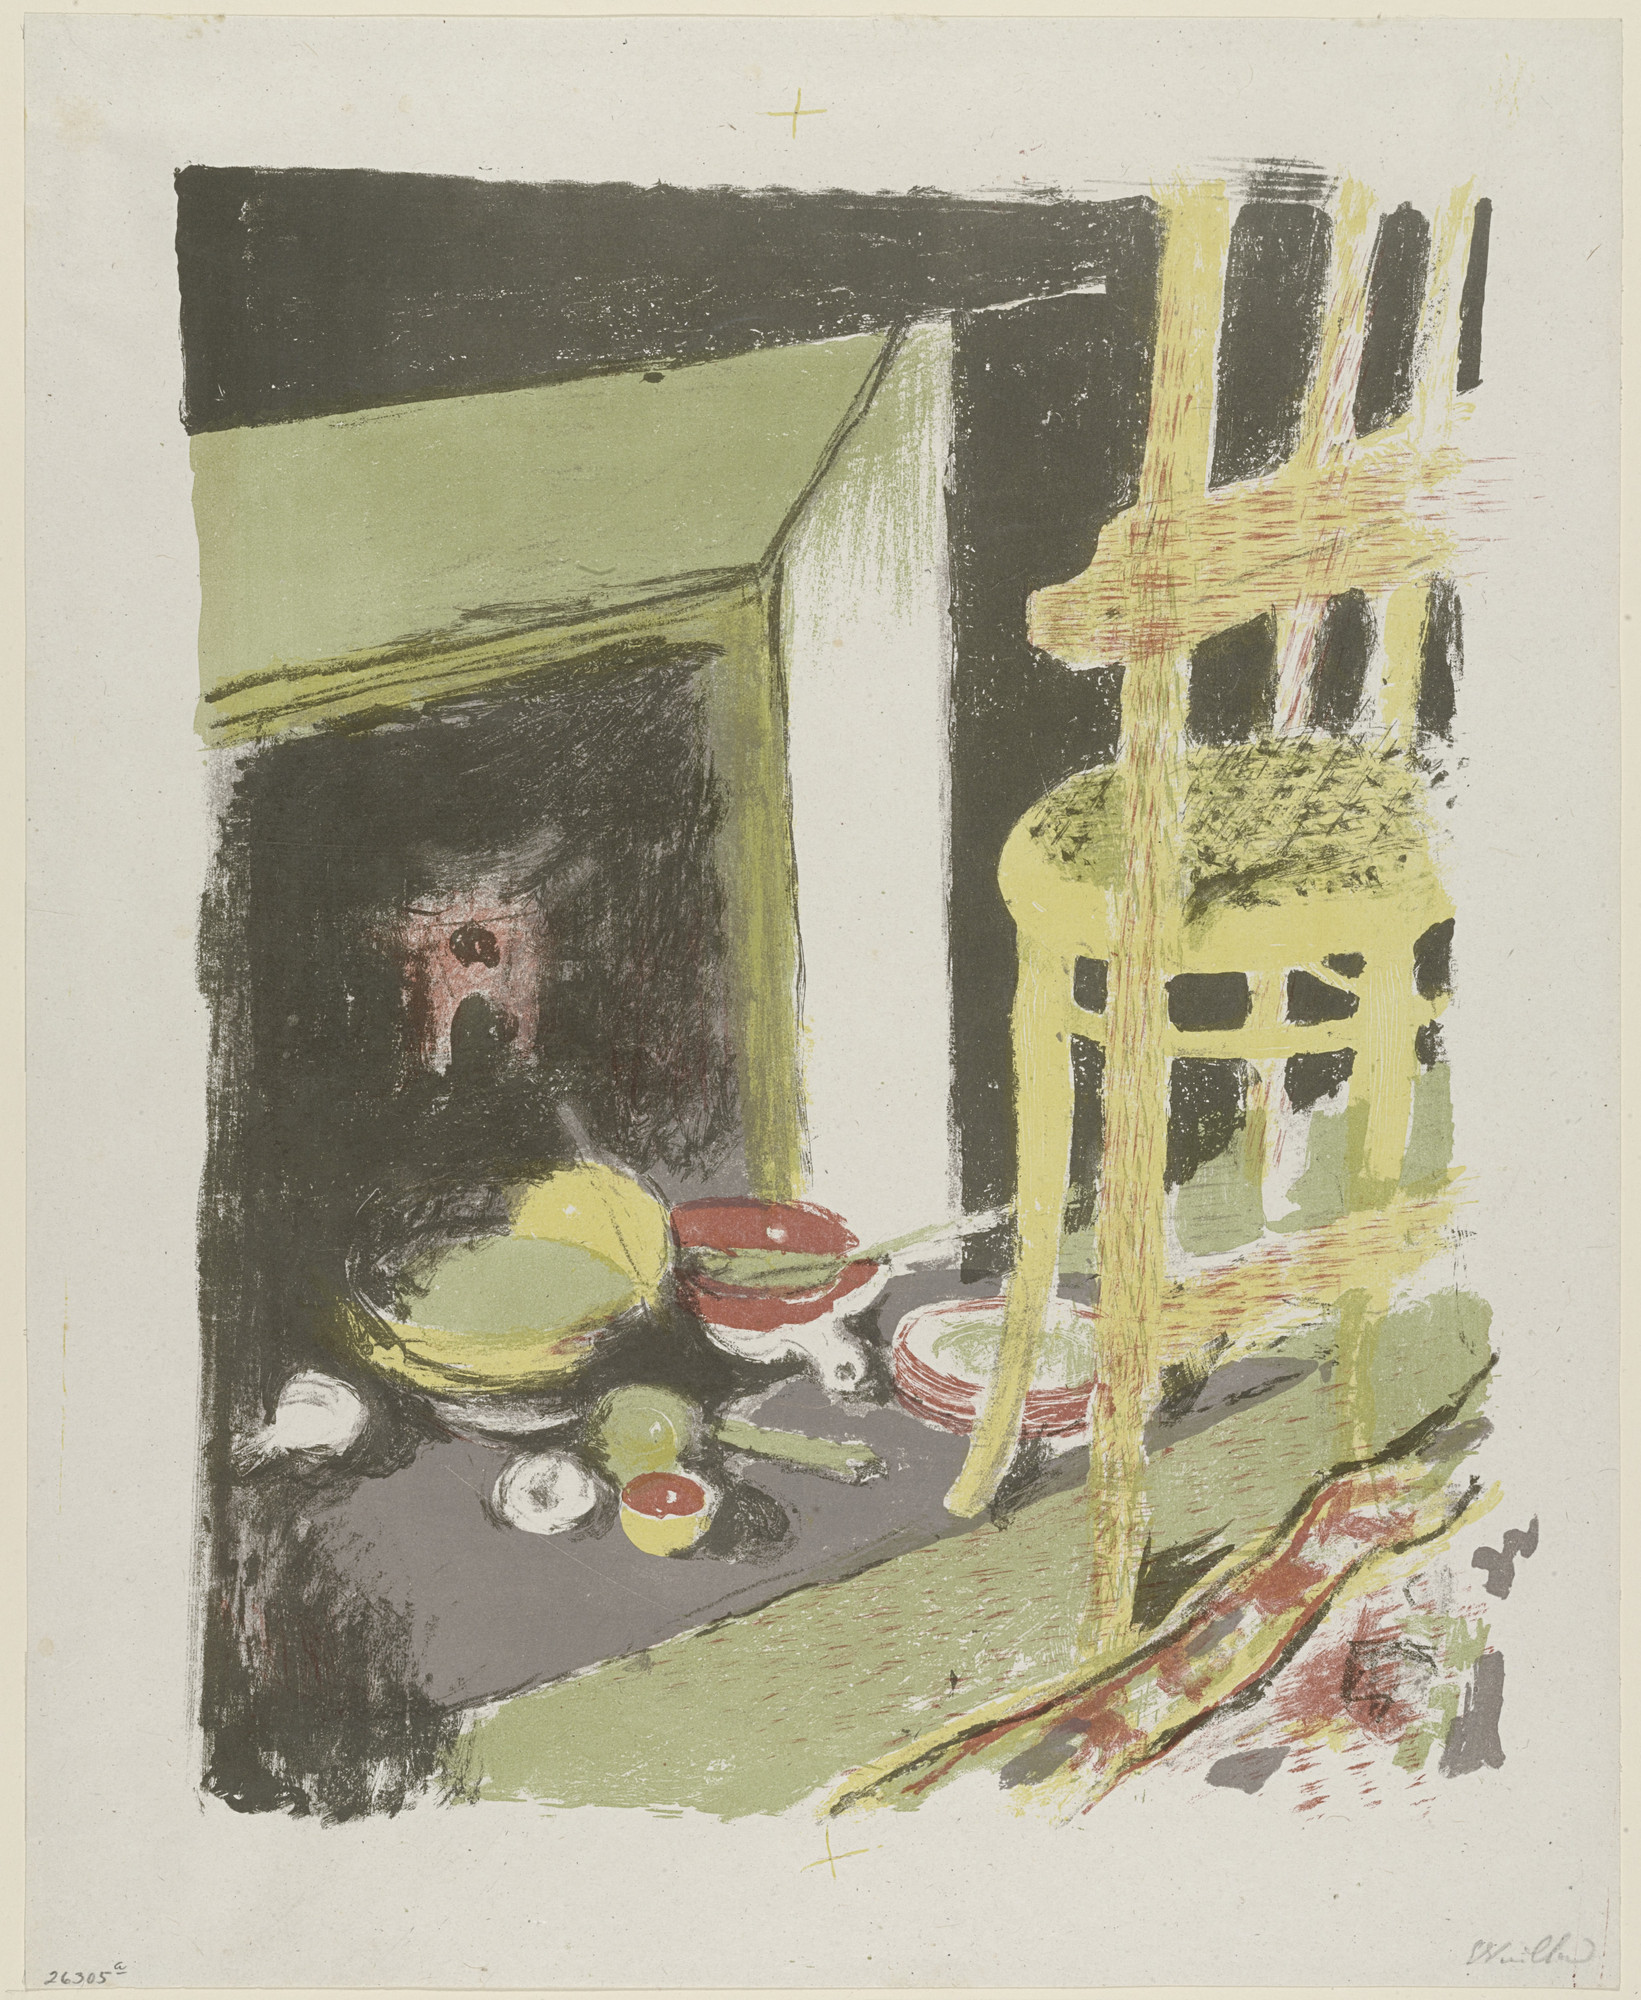 Édouard Vuillard. The Hearth (L'Atre) from Landscapes and Interiors (Paysages et intérieurs). 1899